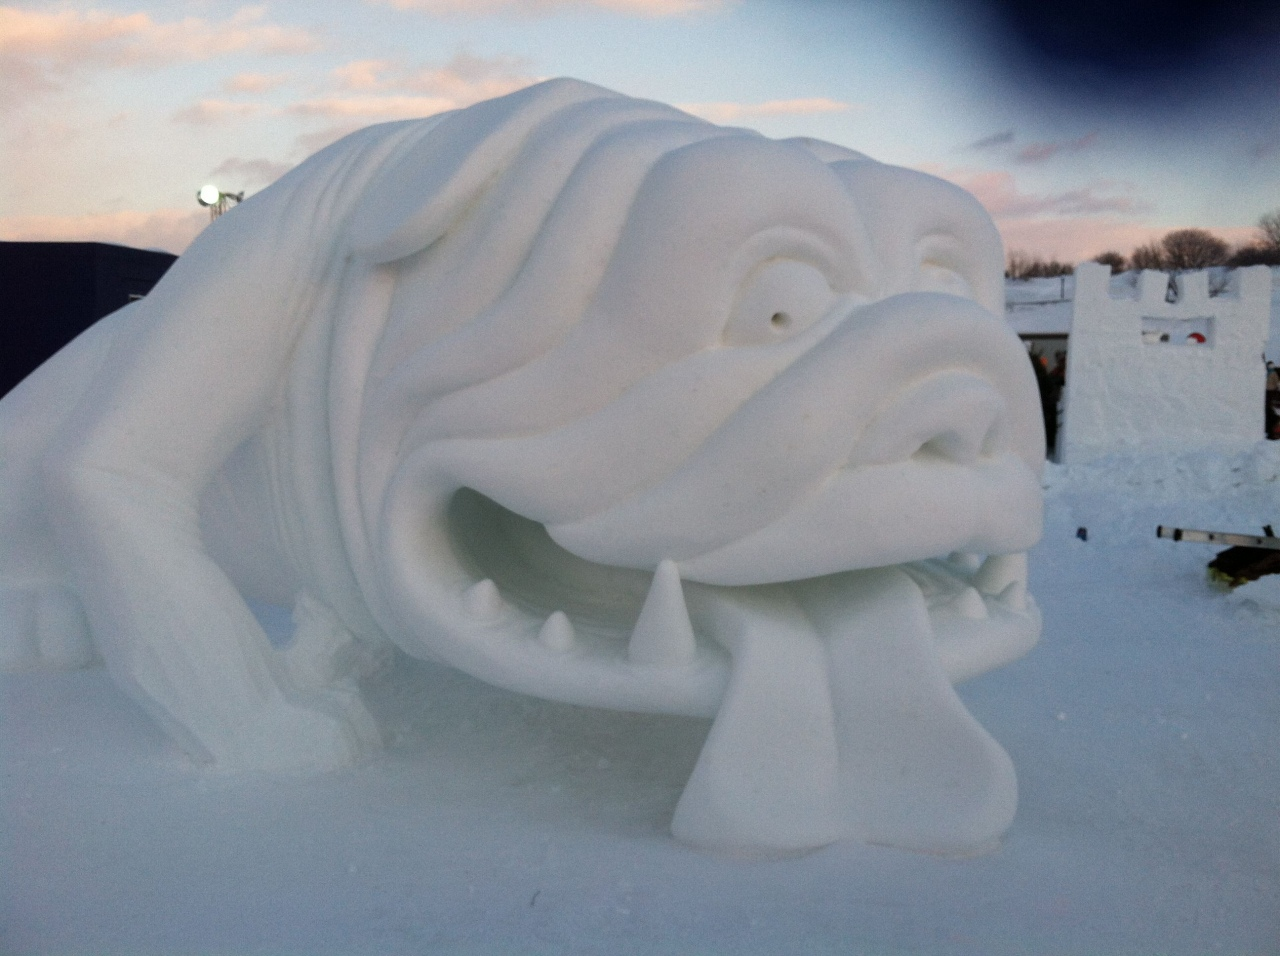 frankenmuth ice festival 2020